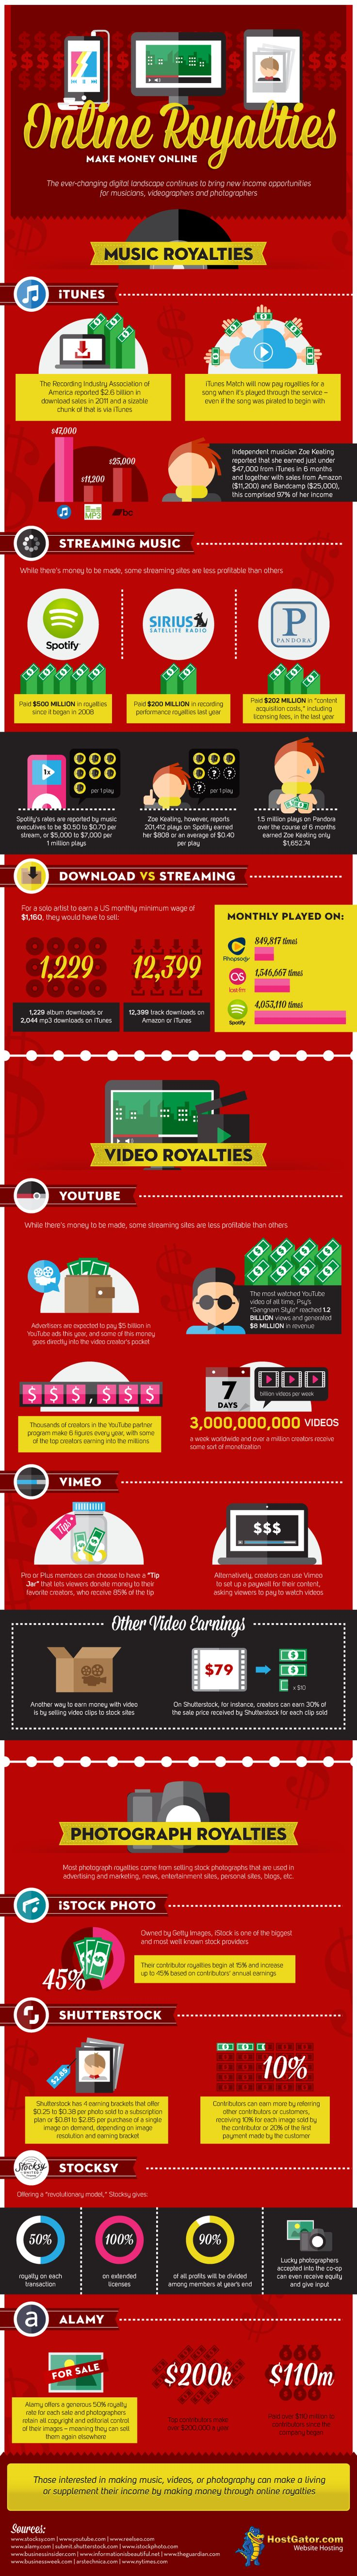 Online Royalties in the USA